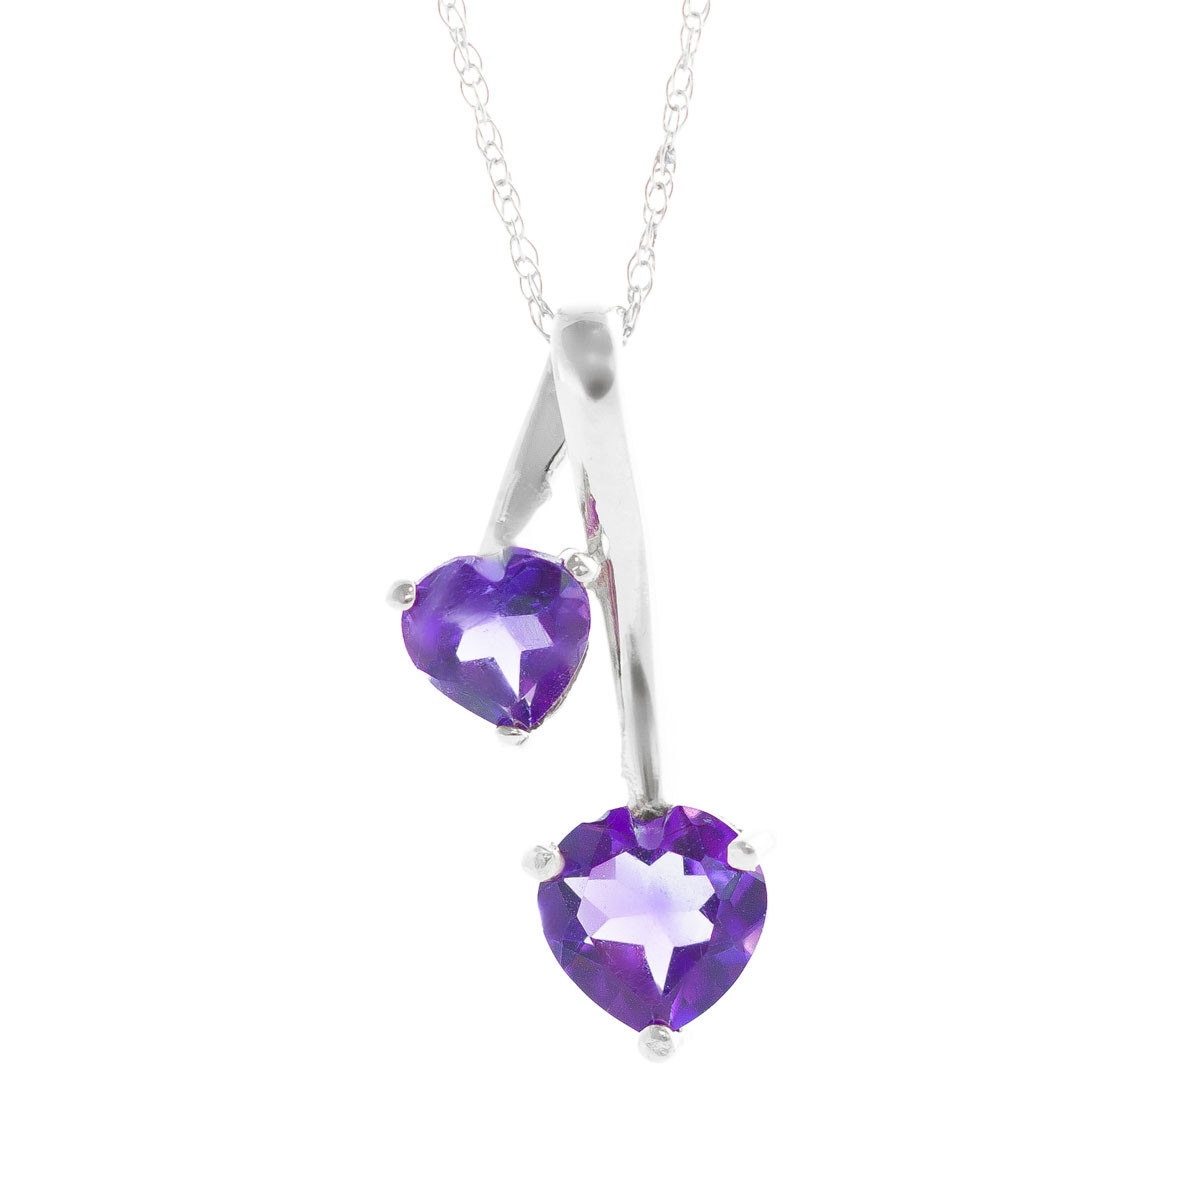 Amethyst Twin Pendant Necklace 1.4 ctw in 9ct White Gold